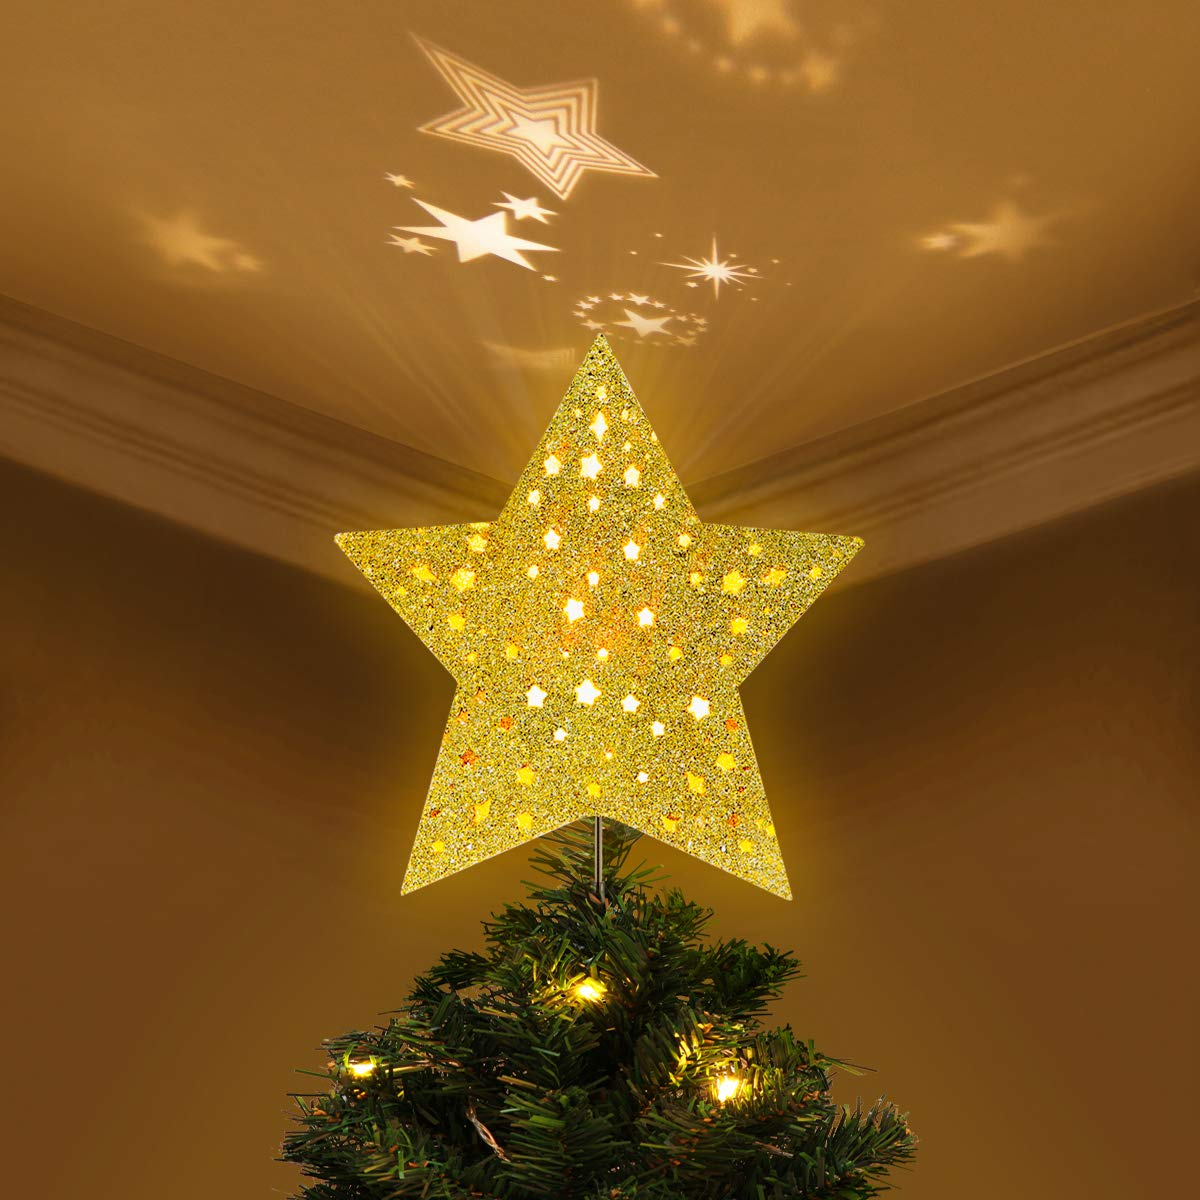 Yunlights 8 Inch Lighted Christmas Tree Topper Classic 5 Point Star